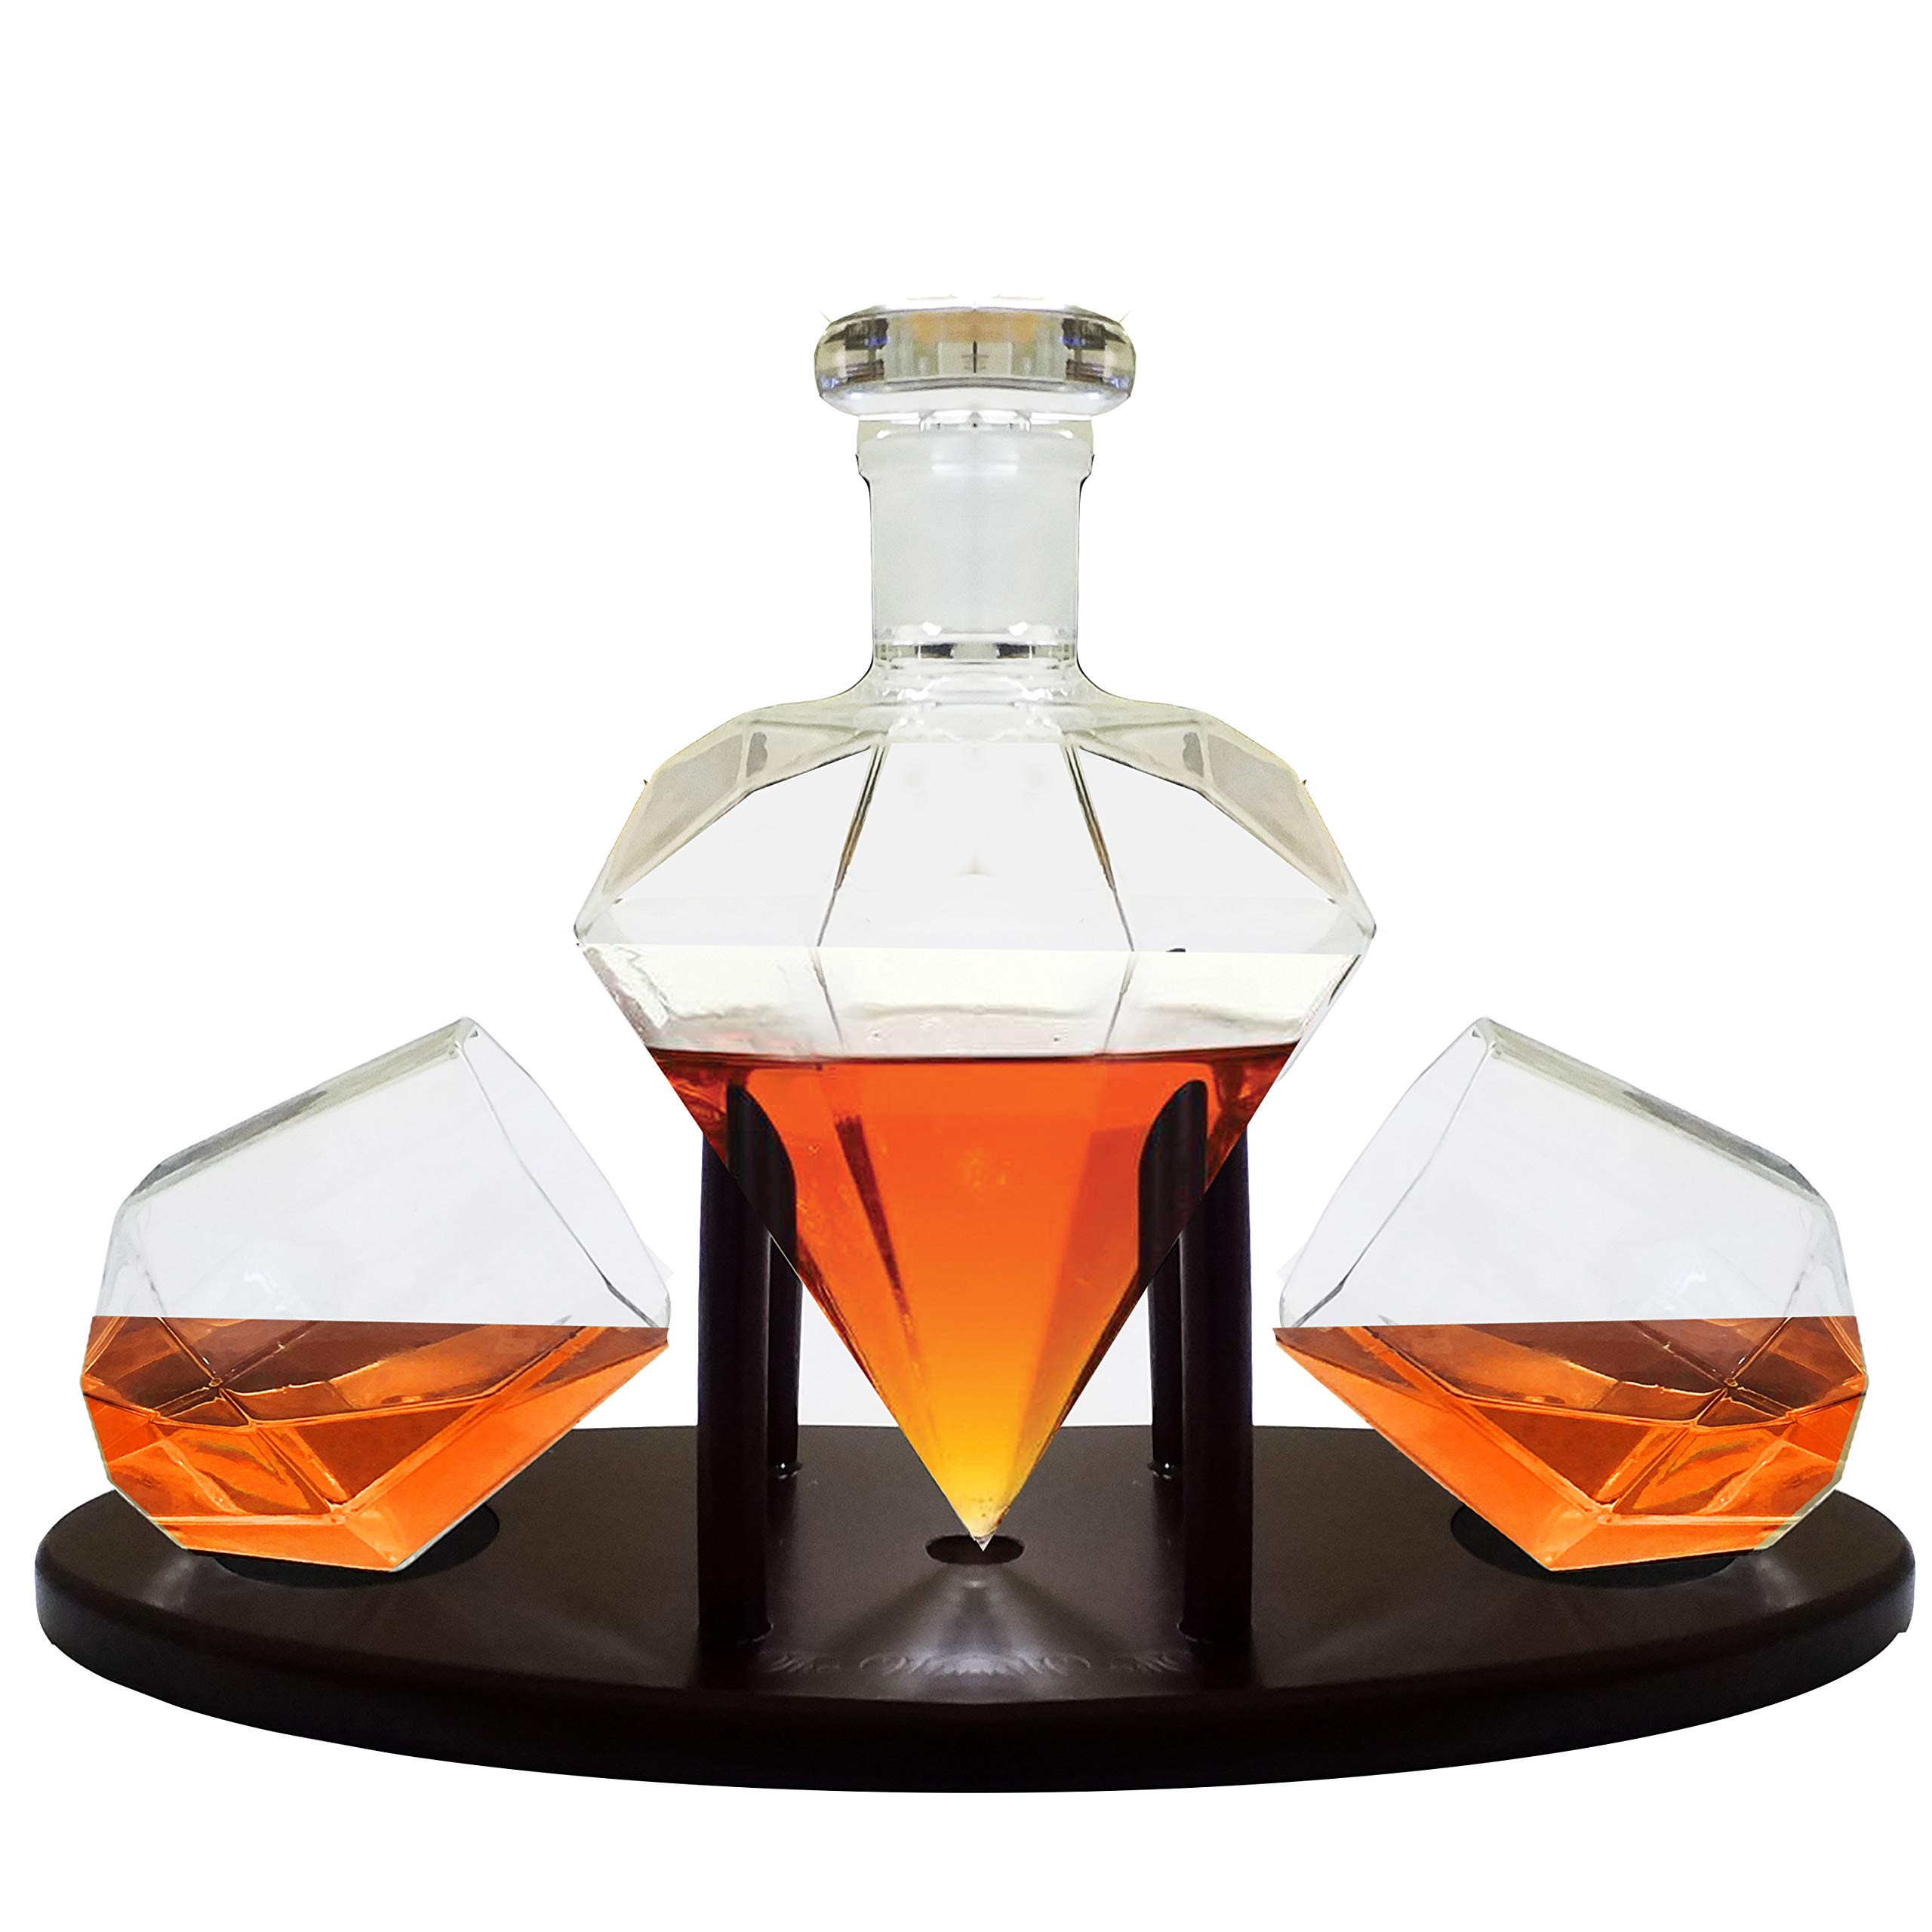 Whiskey Decanter Diamond shaped With 2 Diamond Glasses & Mahogany Wooden Holder - Elegant Handcrafted Crafted Glass Decanter For Liquor, Scotch, Rum, Bourbon, Vodka, Tequila - Great Gift Idea - 750ml by RUGLUSH (Image #2)